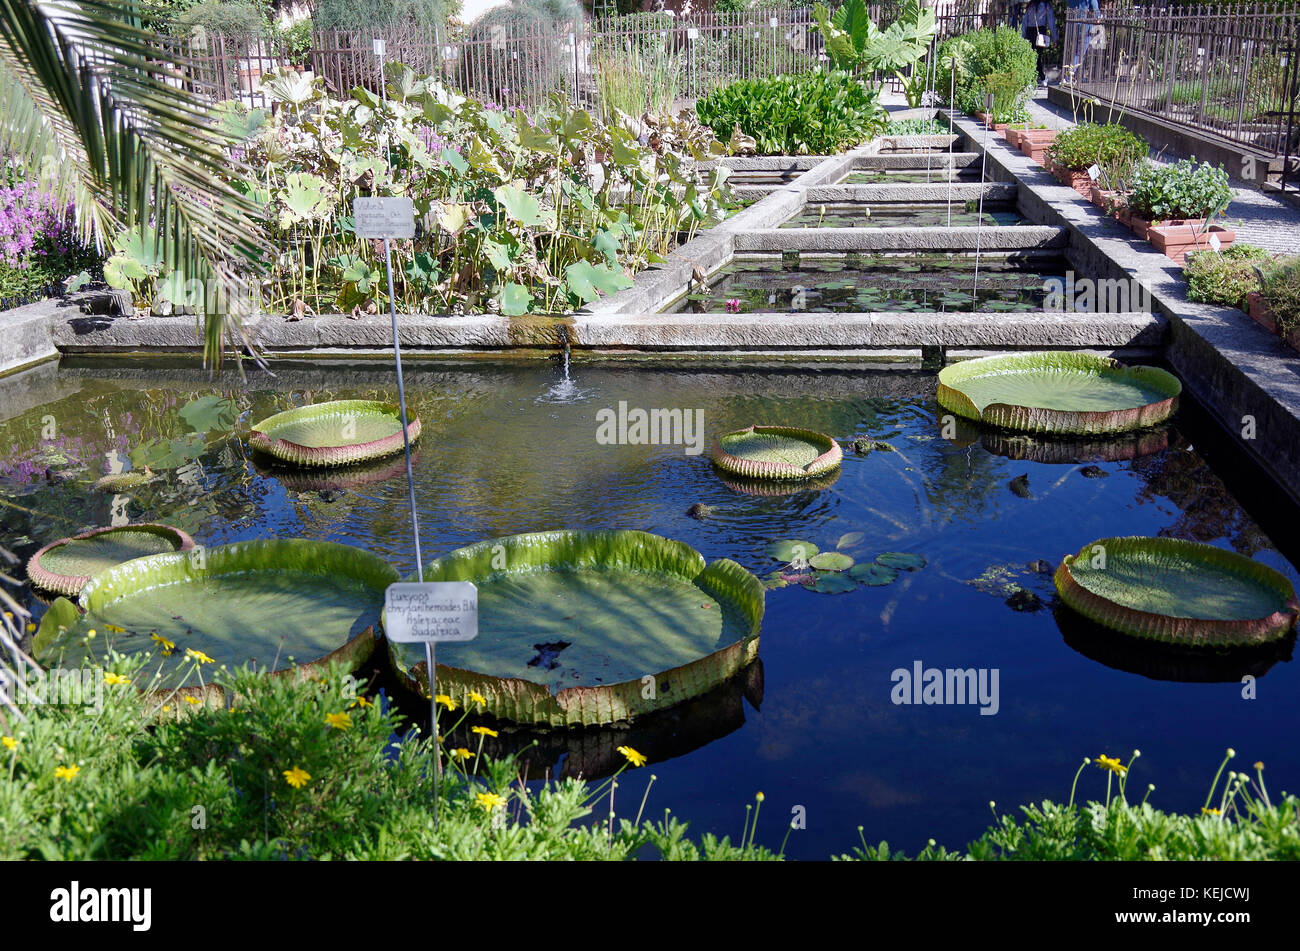 Orto Botanico di Padova, Padua Botanical garden, the world's oldest, in  Italy, Water lilies - Stock Image